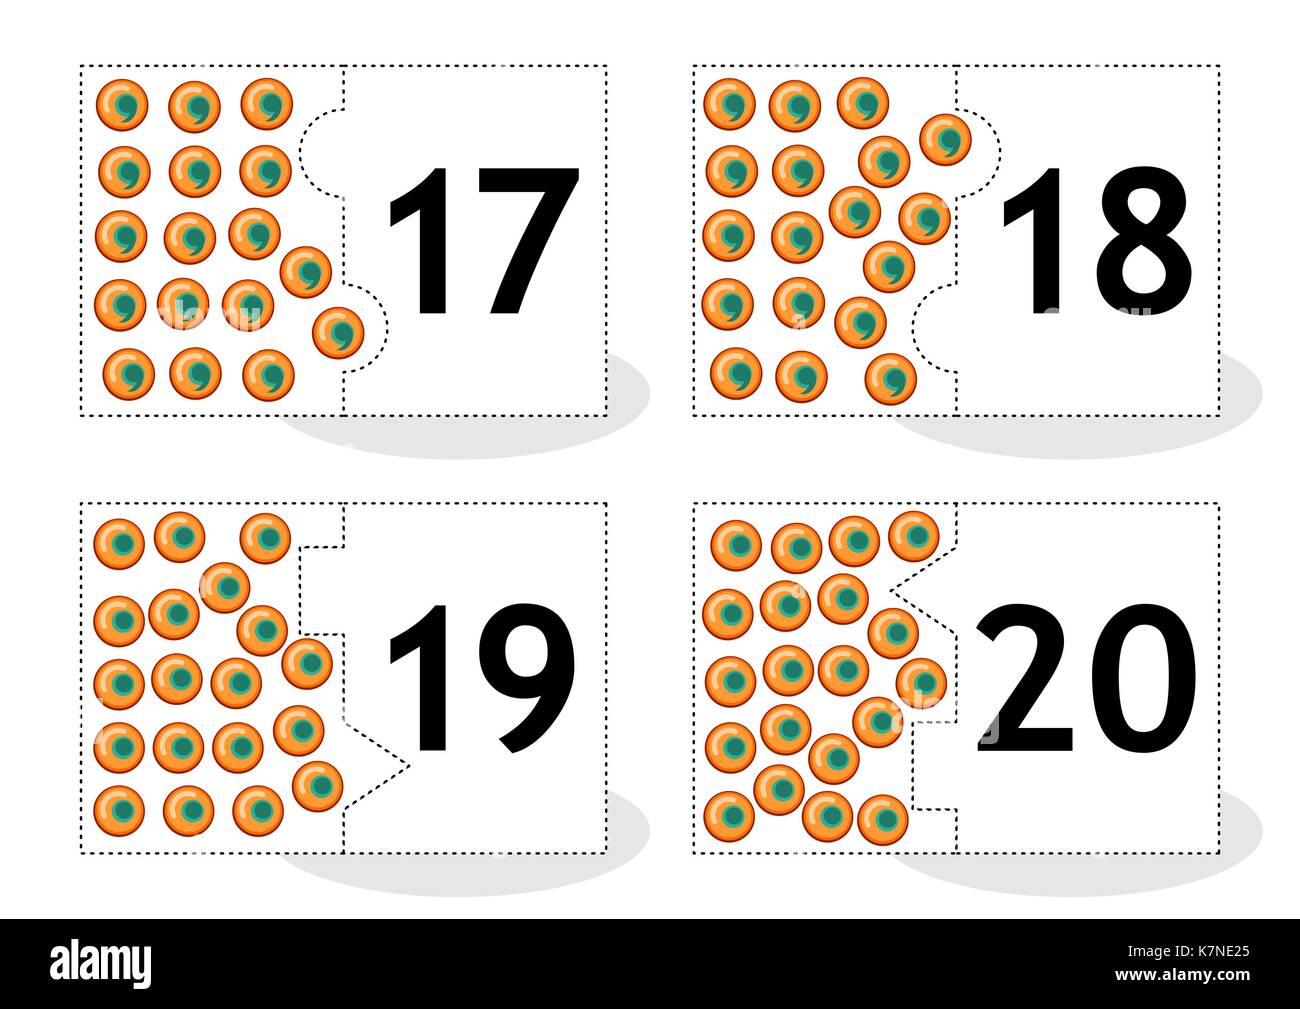 Learn counting 2-part puzzle cards to cut out and play, frog eggs themed, numbers 17 - 20 - Stock Image